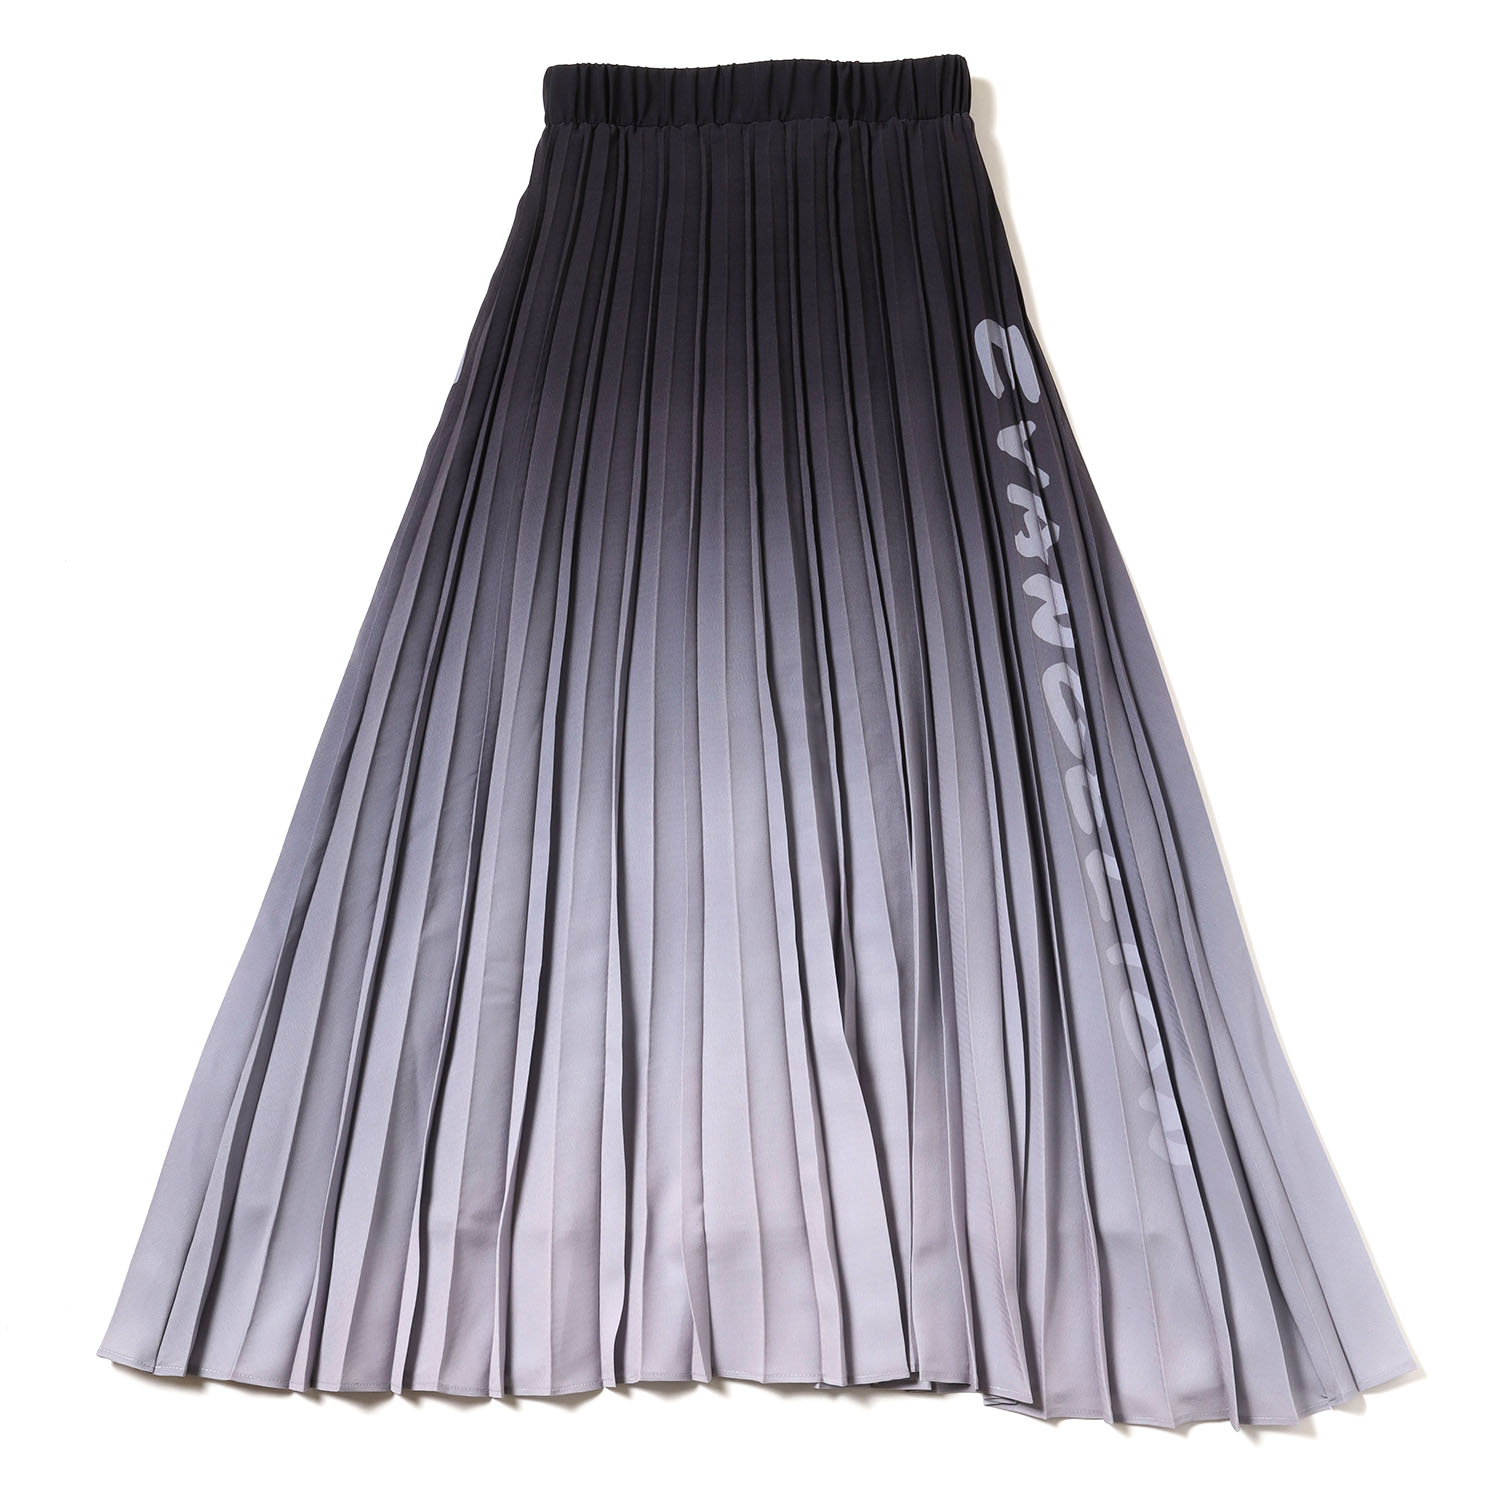 Gradation Pleated Skirt (ブラック)